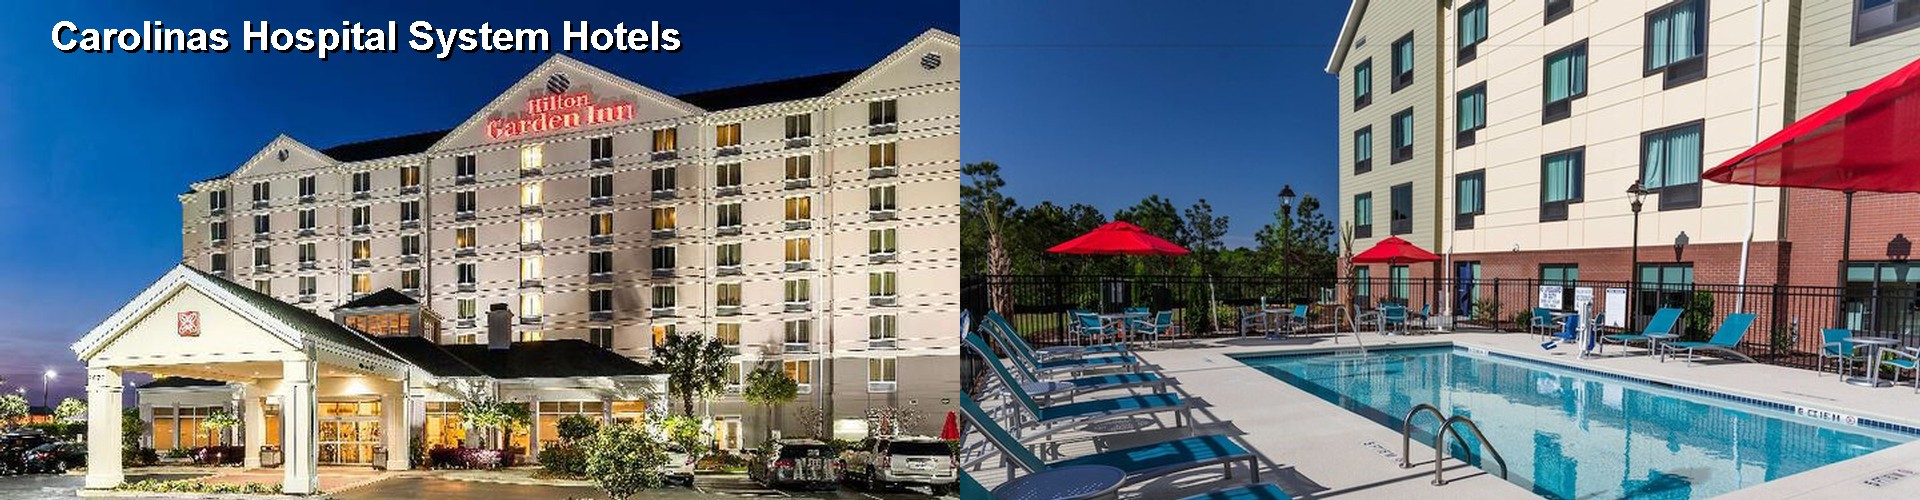 5 Best Hotels near Carolinas Hospital System